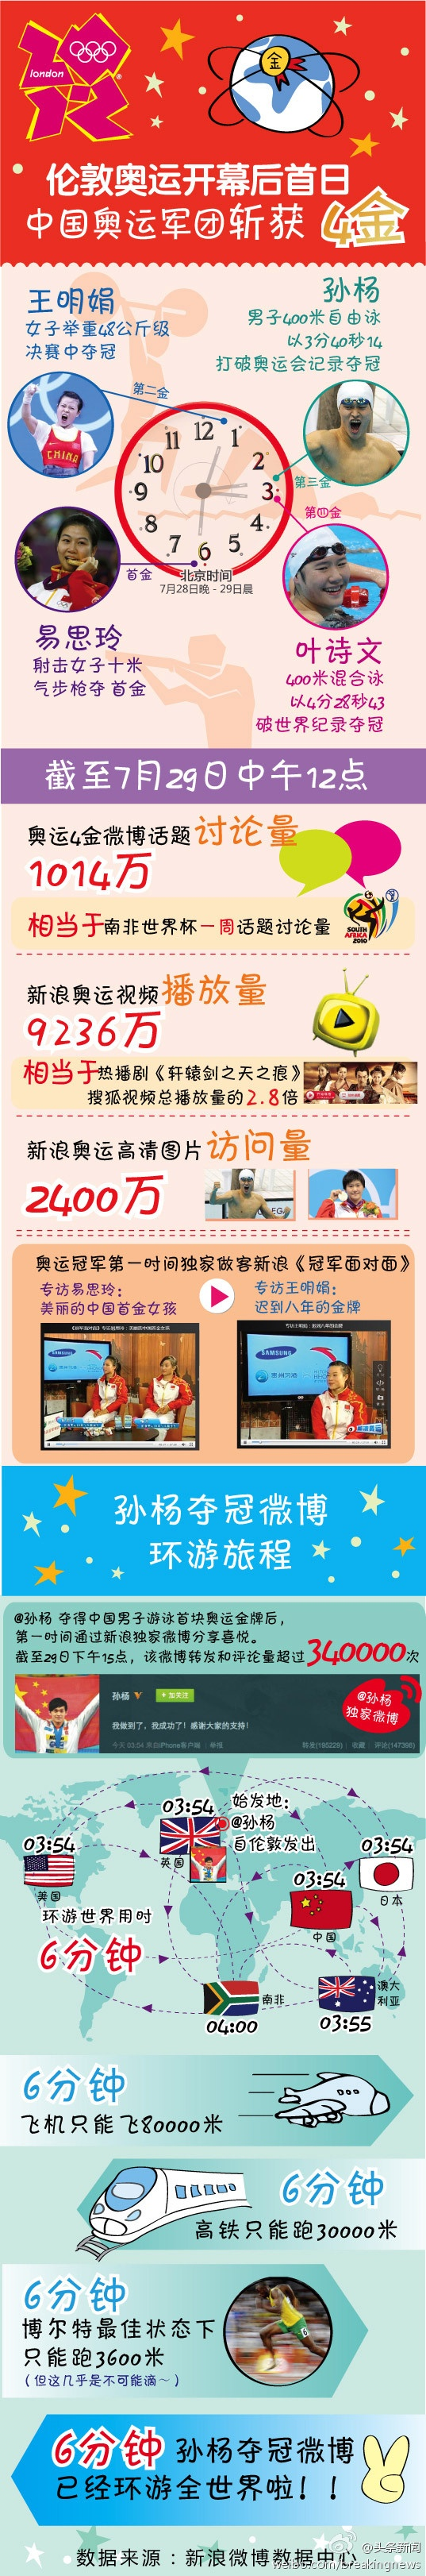 London 2012 Olympic Games in Sina Weibo